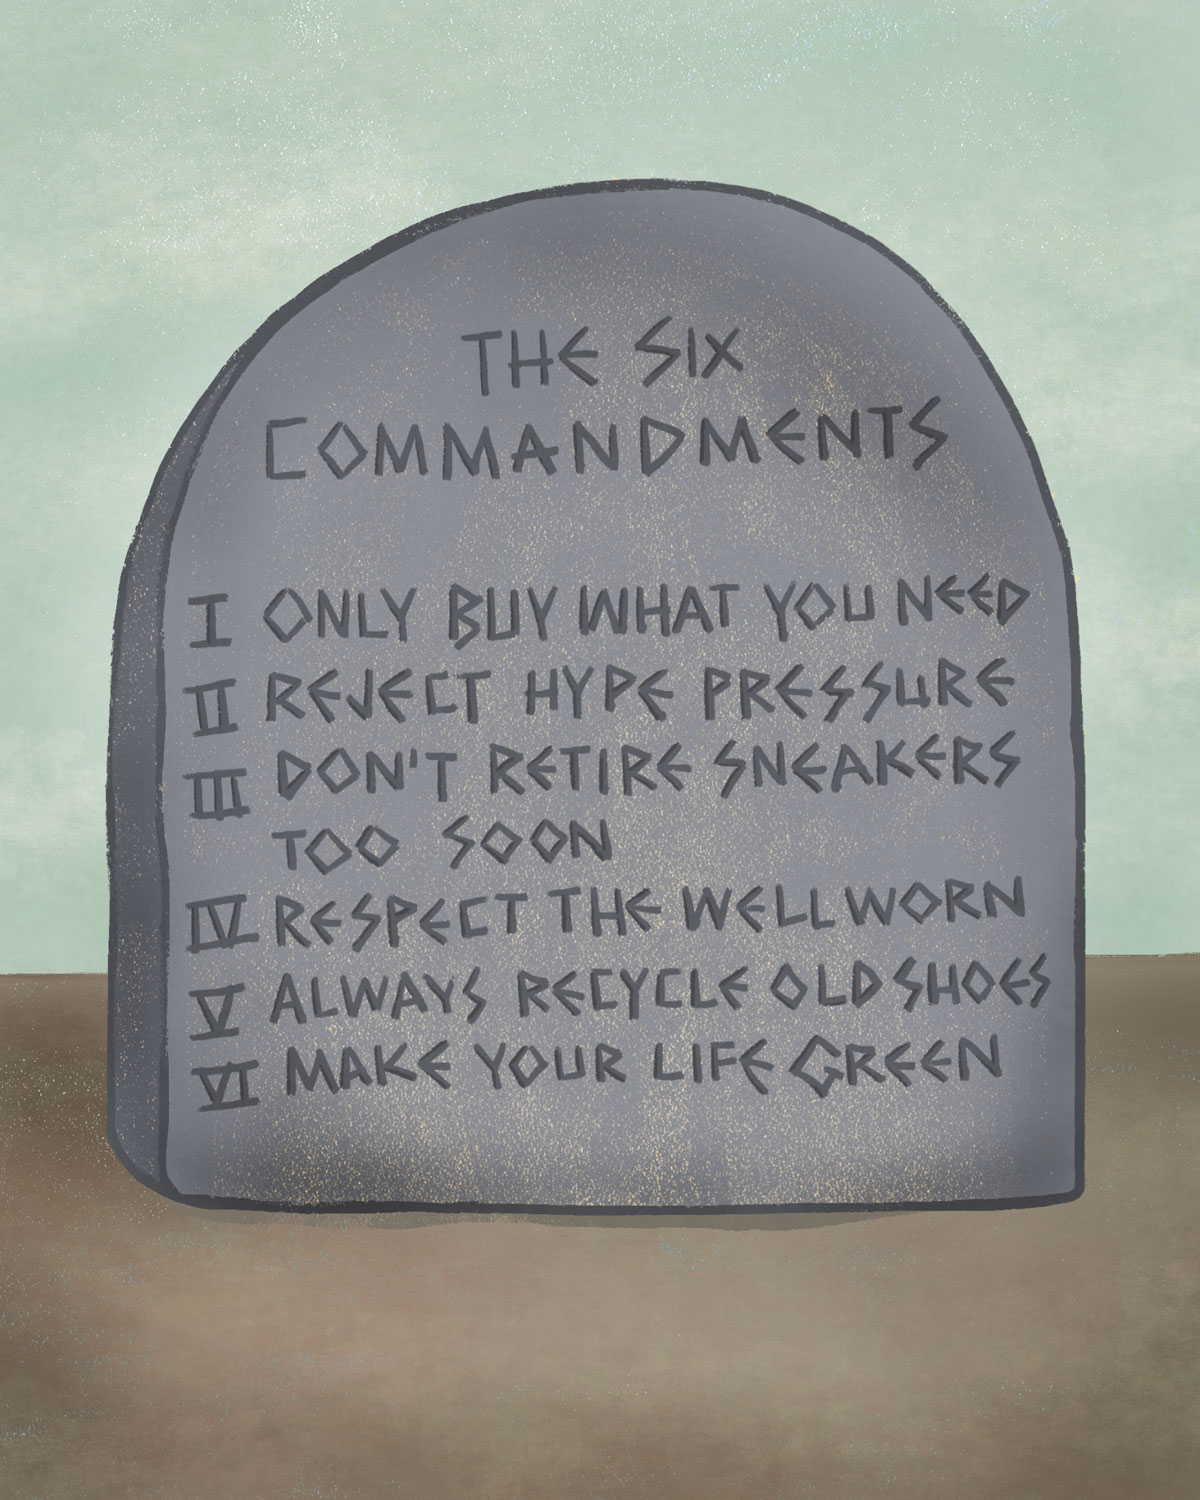 The Six Commandments / for the love of nike